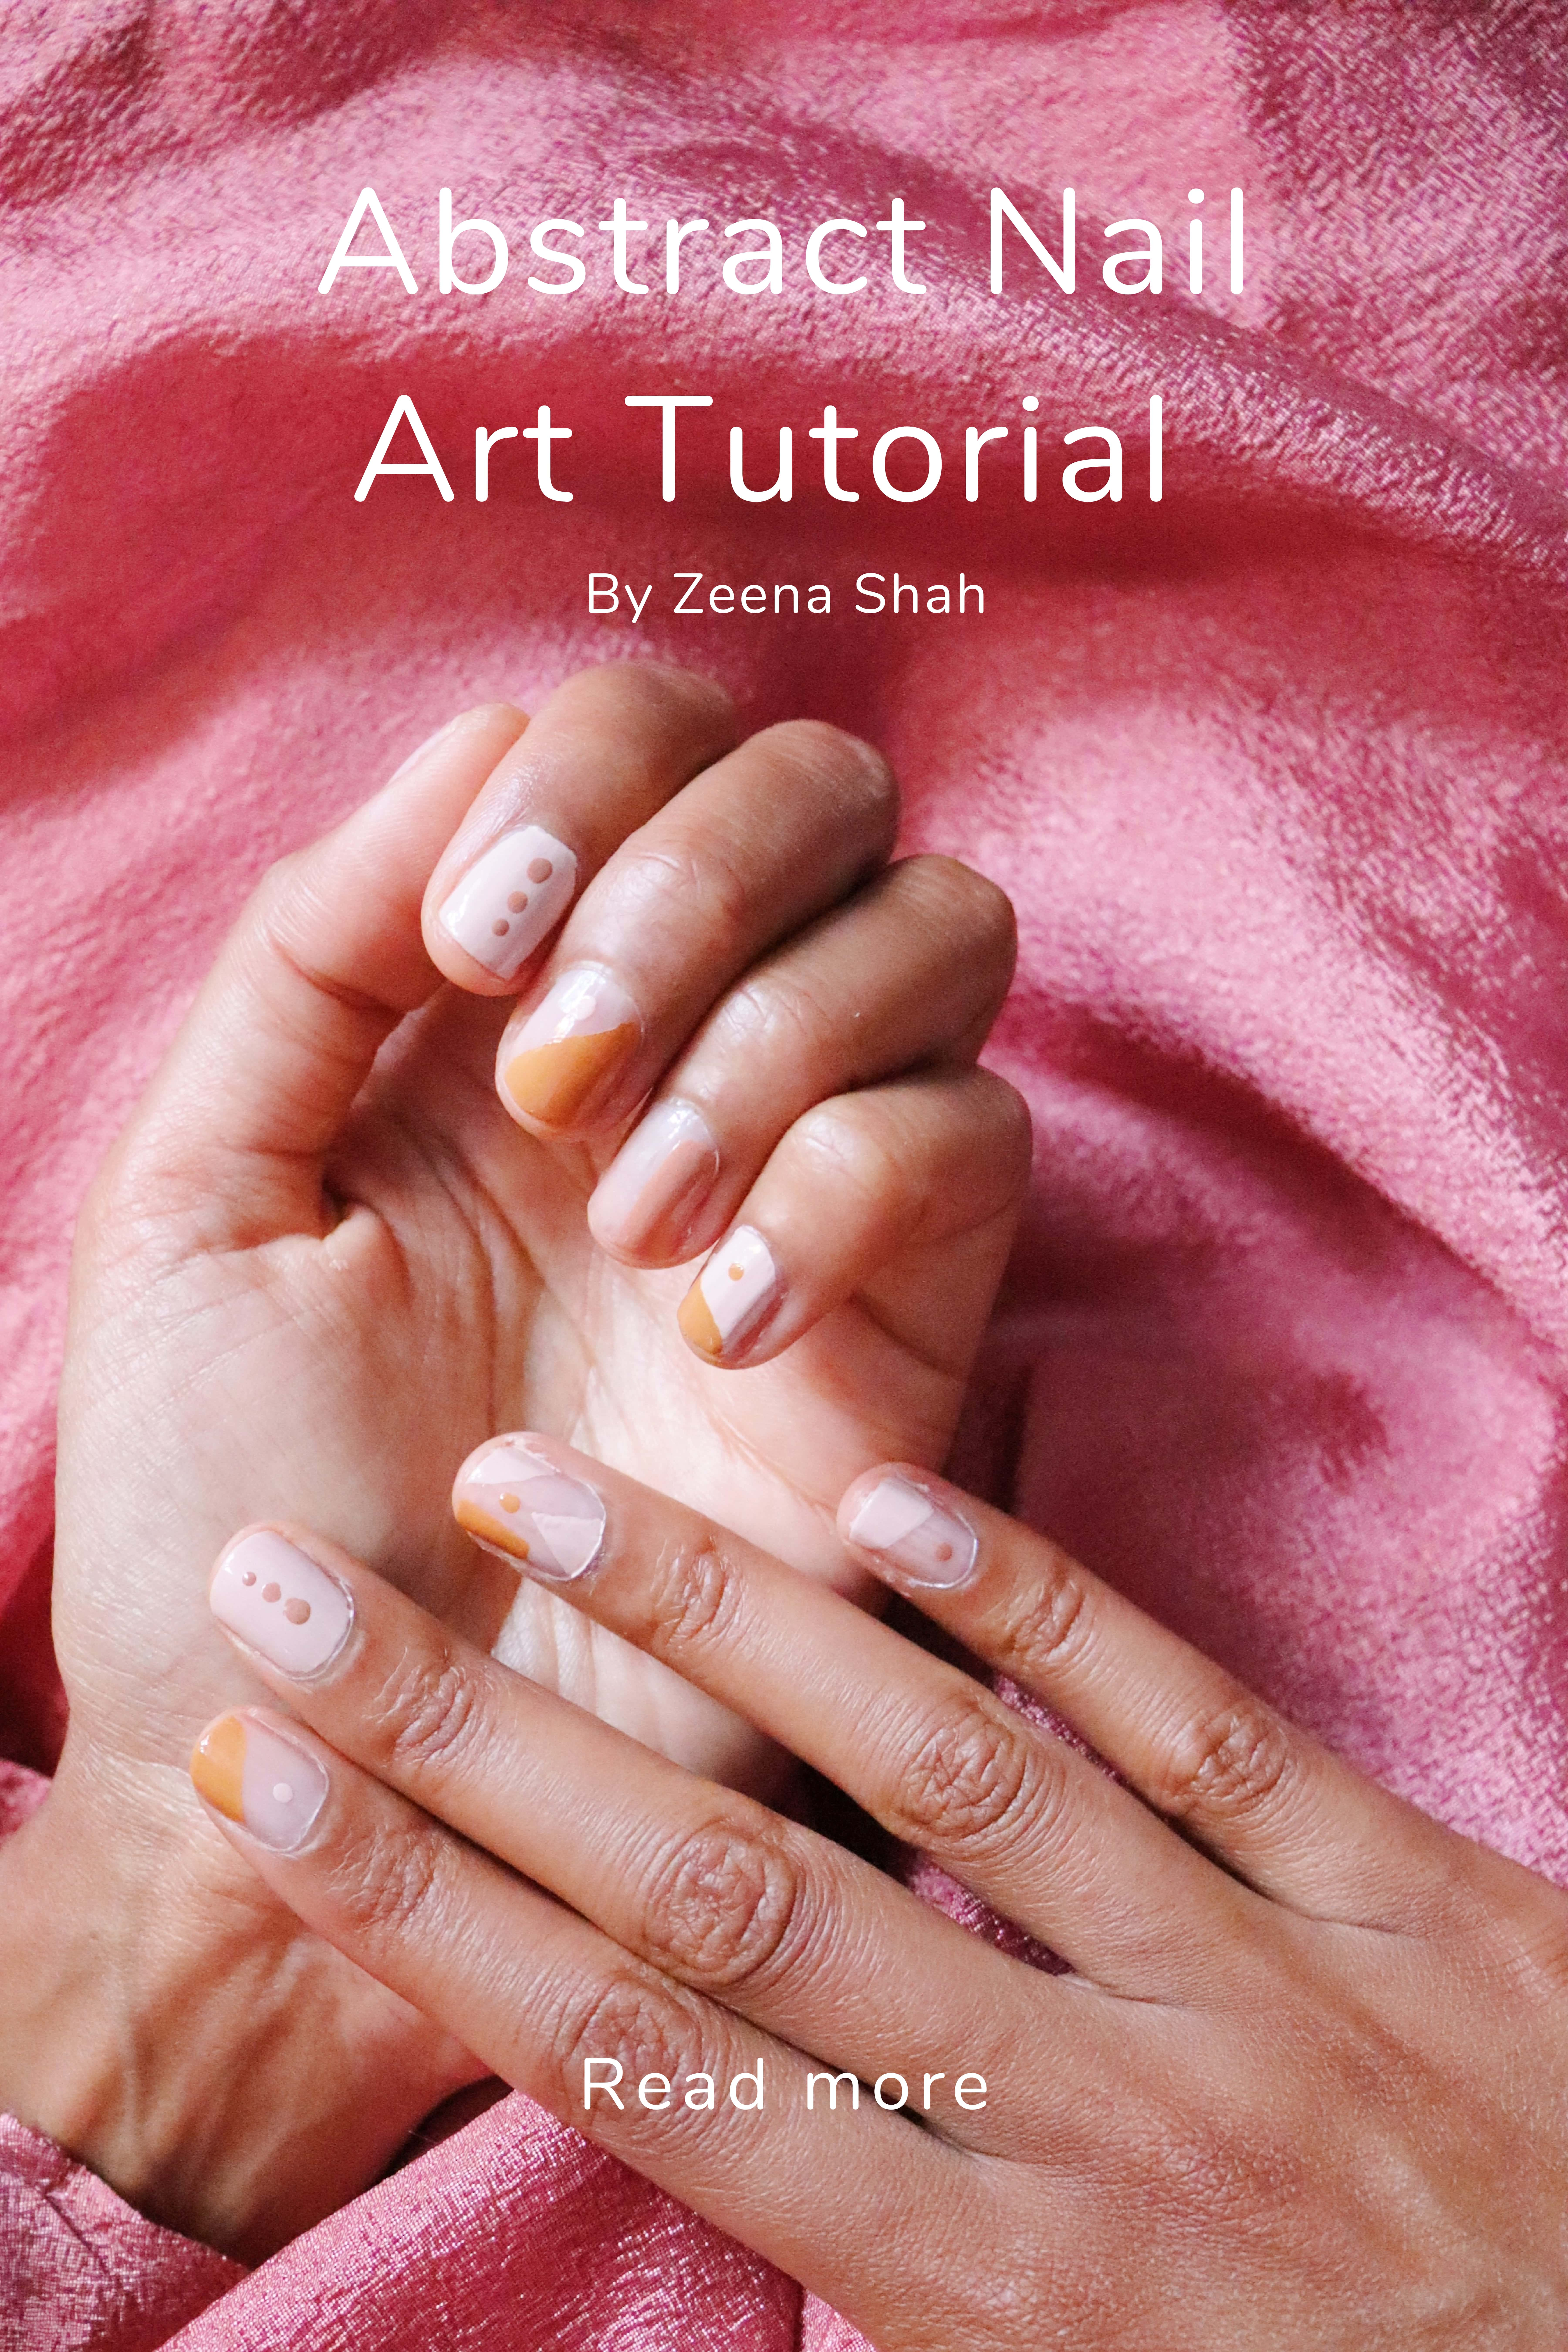 Abstract nail art tutorial by @heartzeena